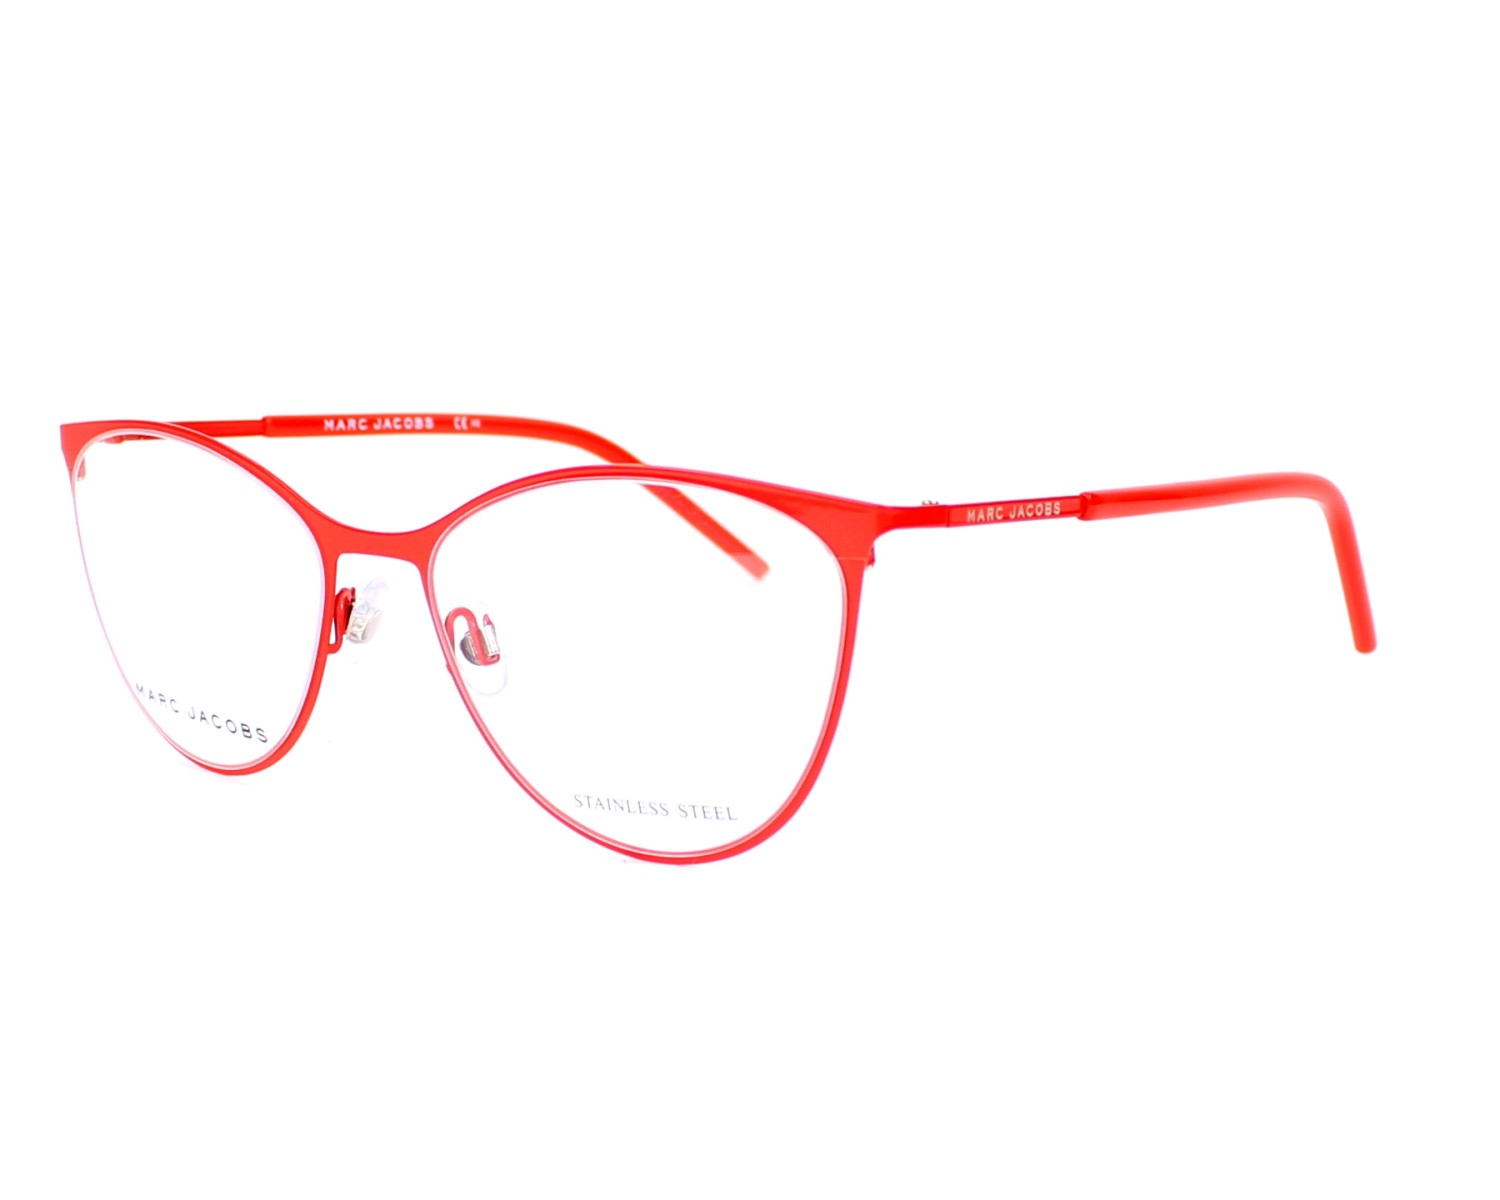 Marc Jacobs Red Sunglasses  order your marc jacobs eyeglasses marc 41 tef 54 today